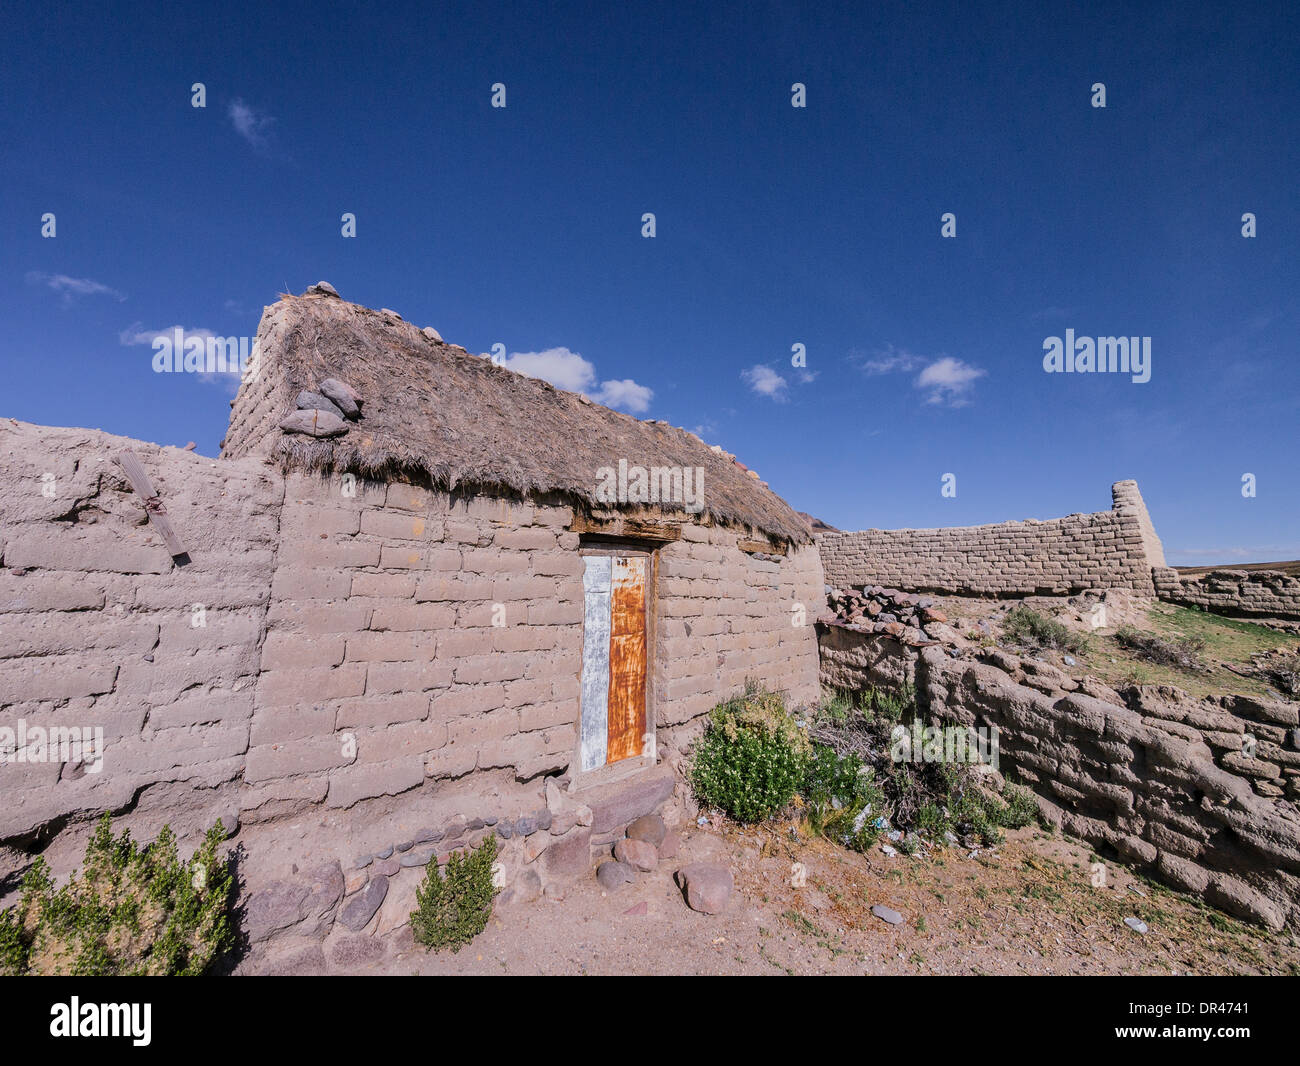 Abandoned Adobe Houses Missing Their Thatched Roofs In The